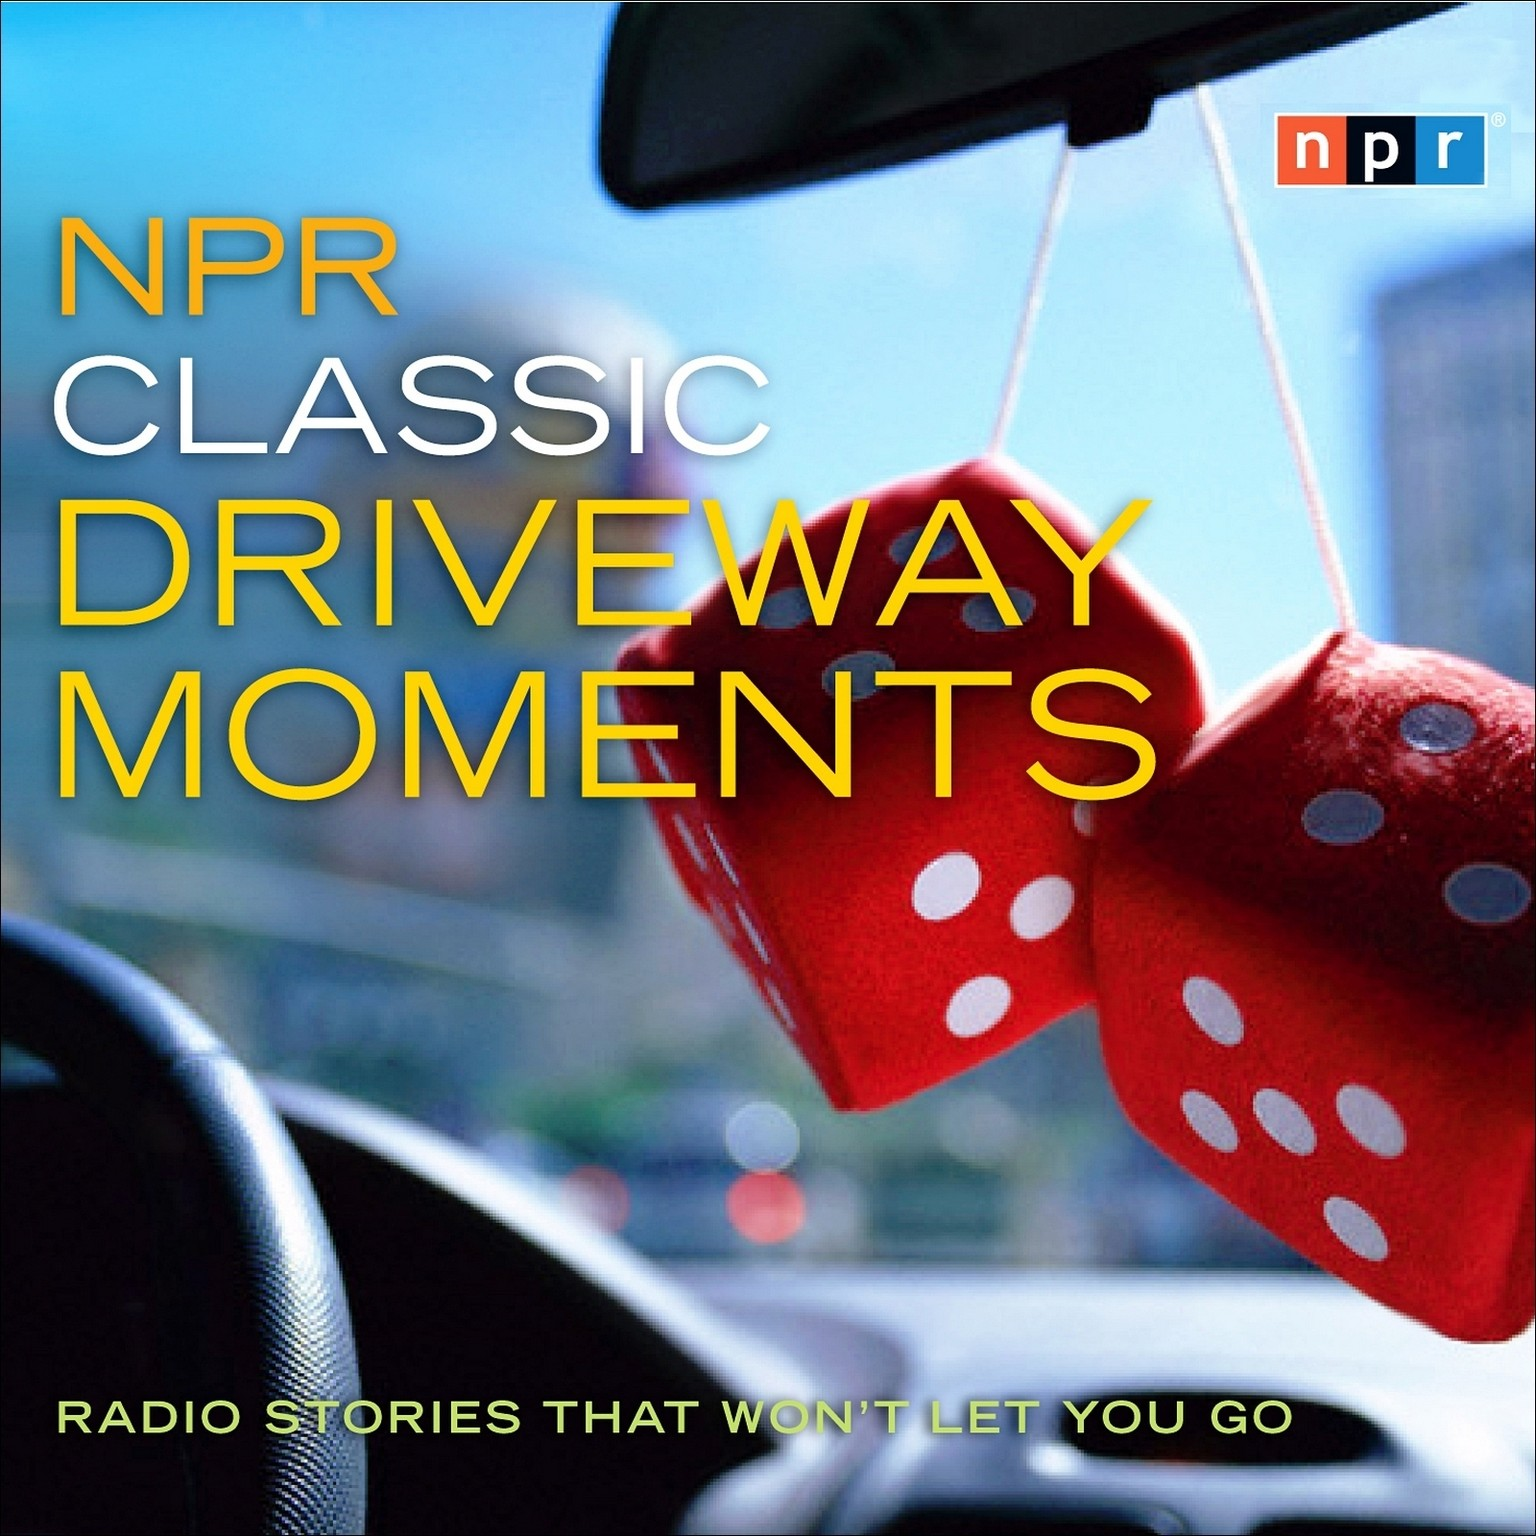 Printable NPR Classic Driveway Moments: Radio Stories that Won't Let You Go Audiobook Cover Art